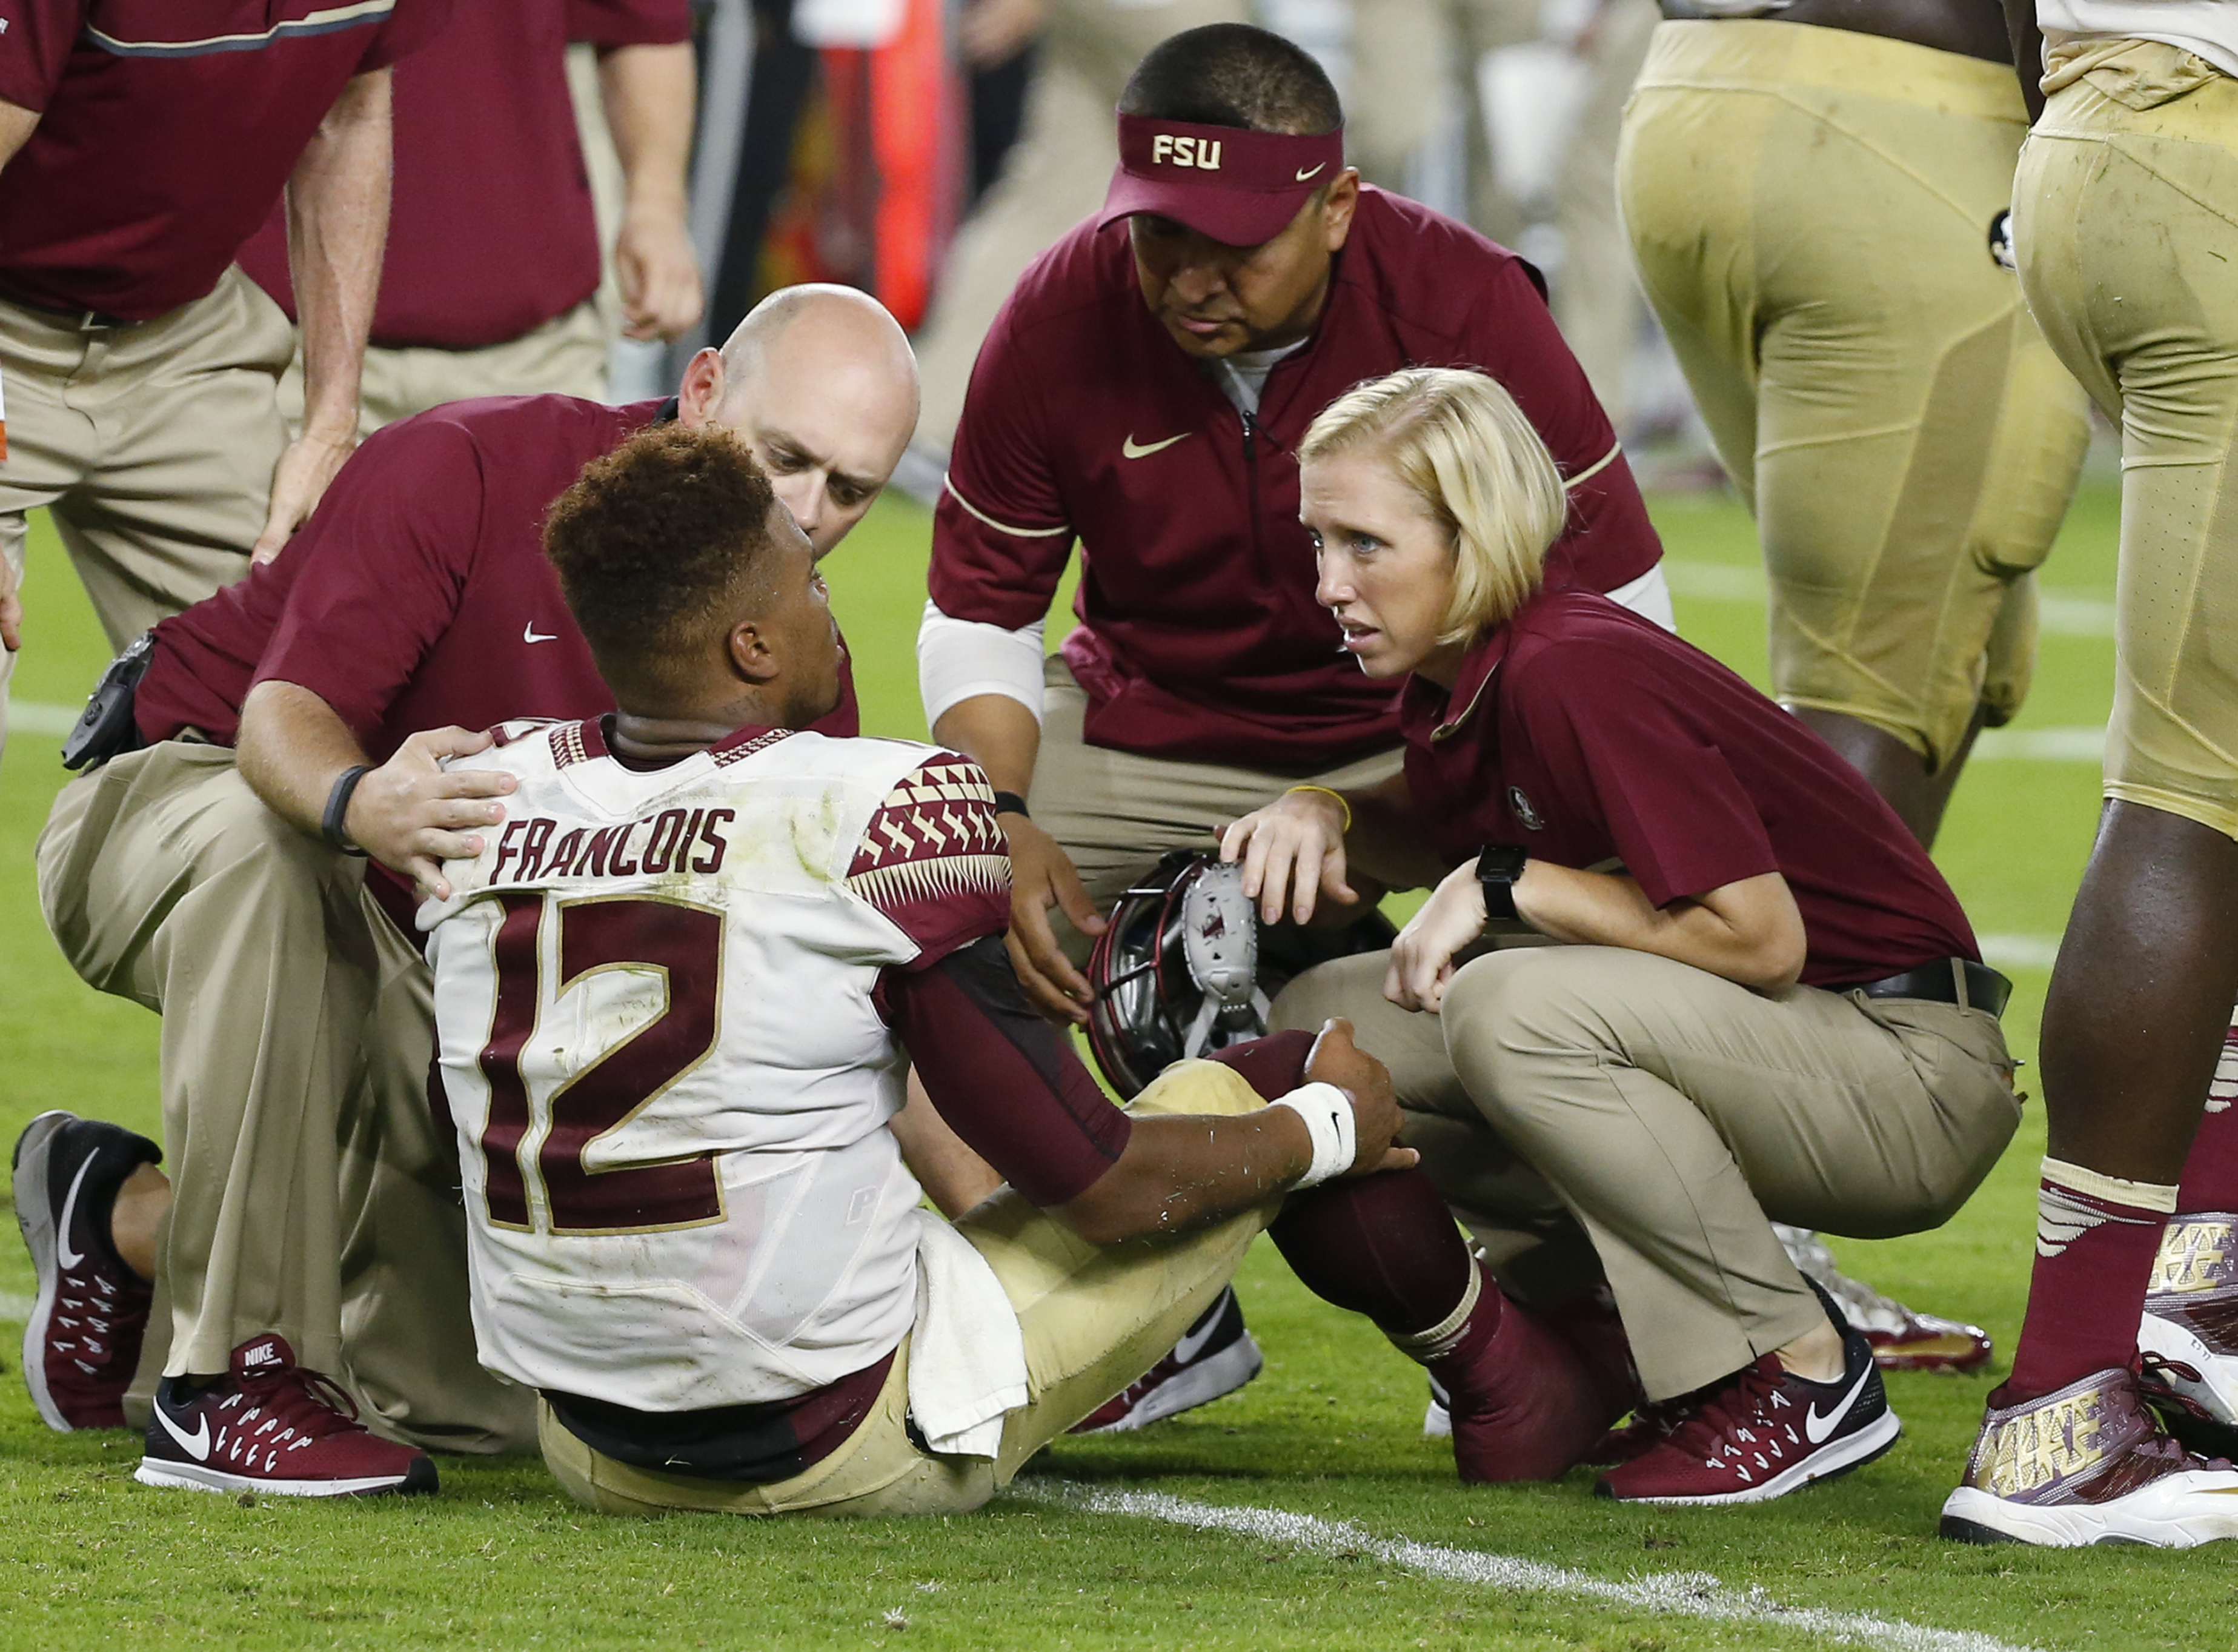 Florida State quarterback Deondre Francois (12) is attended on the field during the second half of an NCAA college football game against Miami, Saturday, Oct. 8, 2016, in Miami Gardens. (AP Photo/Wilfredo Lee)